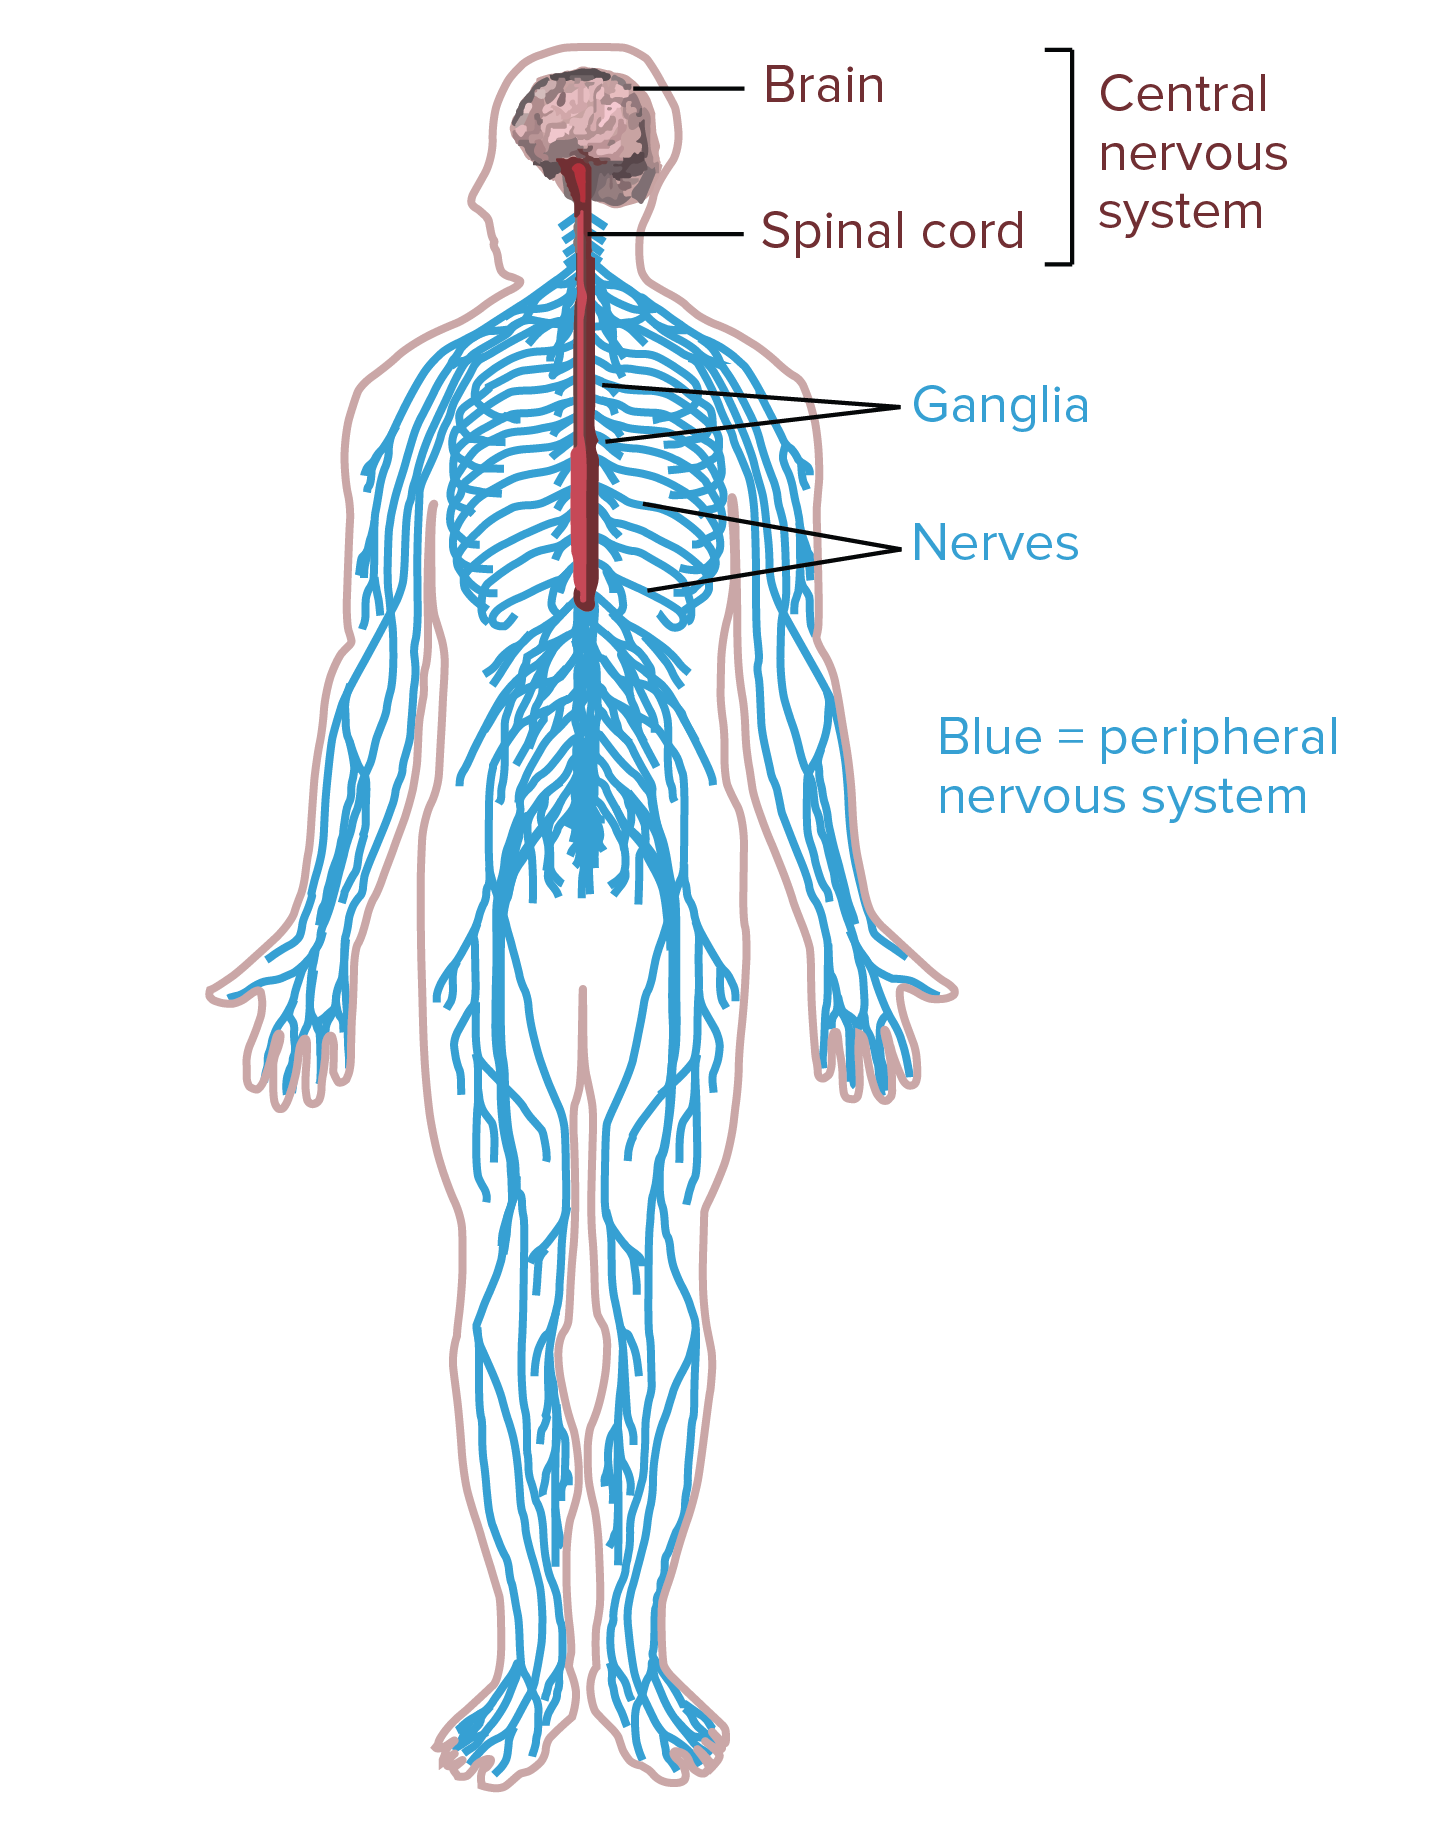 The Human Nervous System Diagram - Wiring Diagram •